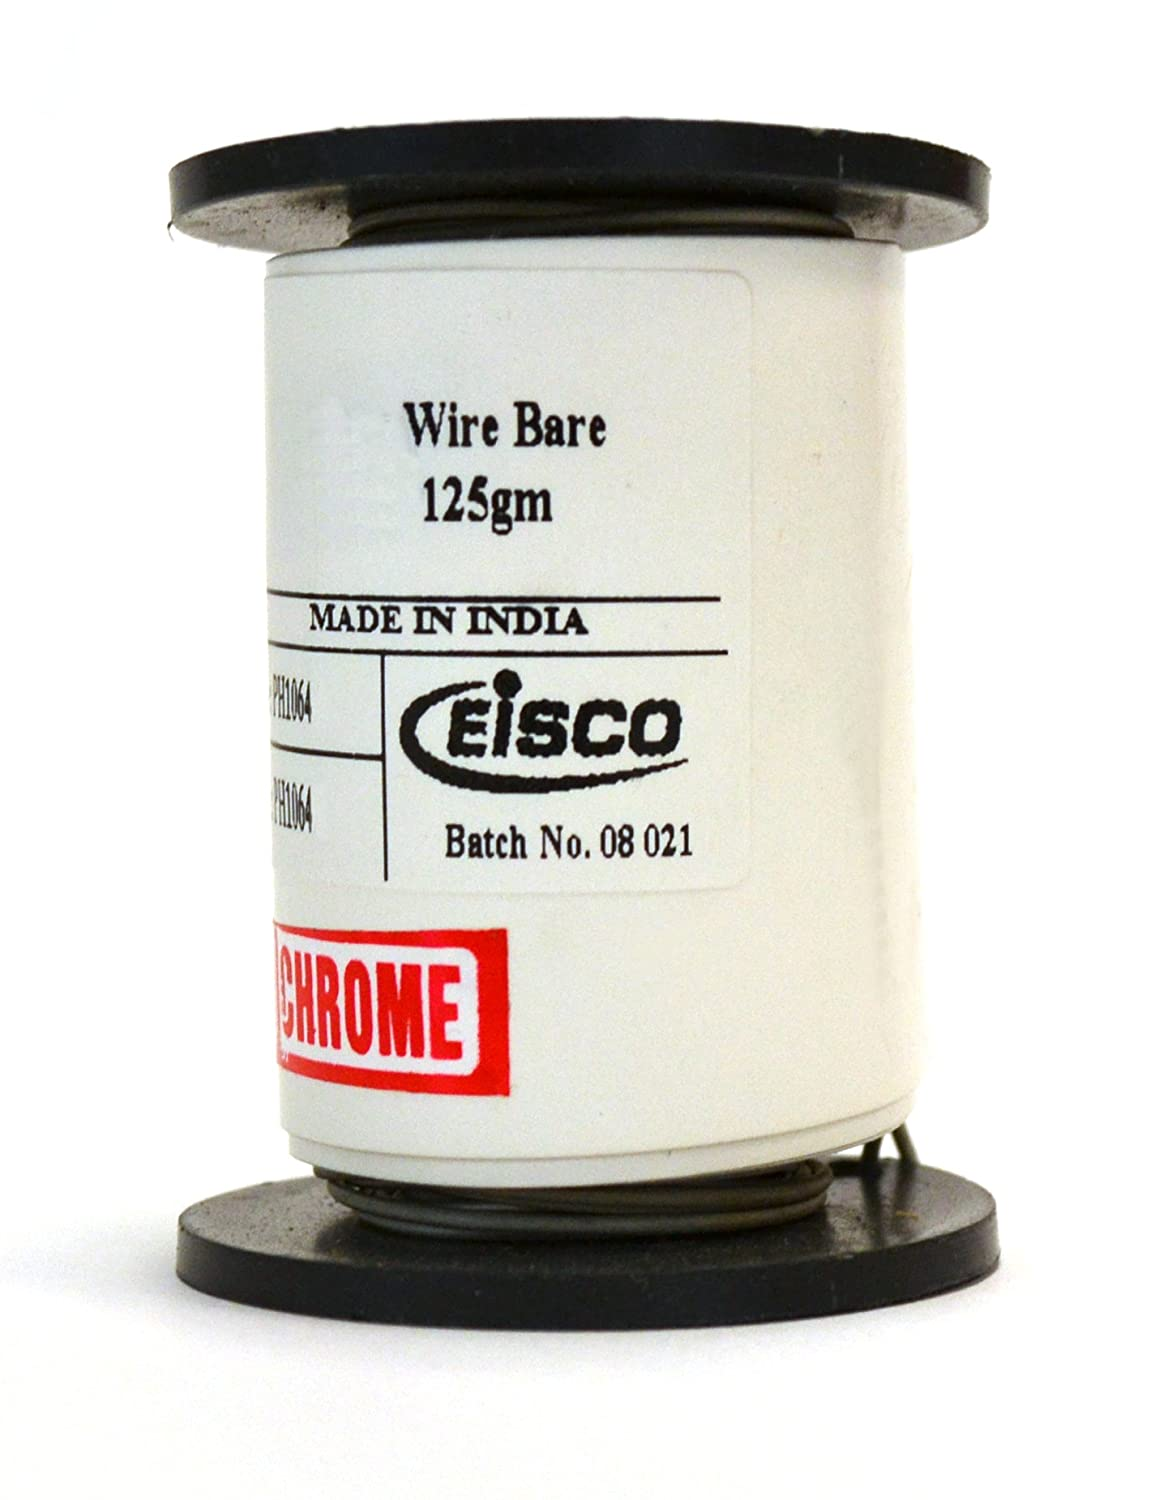 Eisco Labs Chromium Resistance Wire, 90ft Reel, 20 Gauge SWG - 19 AWG - 0.036' Dia. 20 Gauge SWG - 19 AWG - 0.036 Dia. CECOMINOD003975